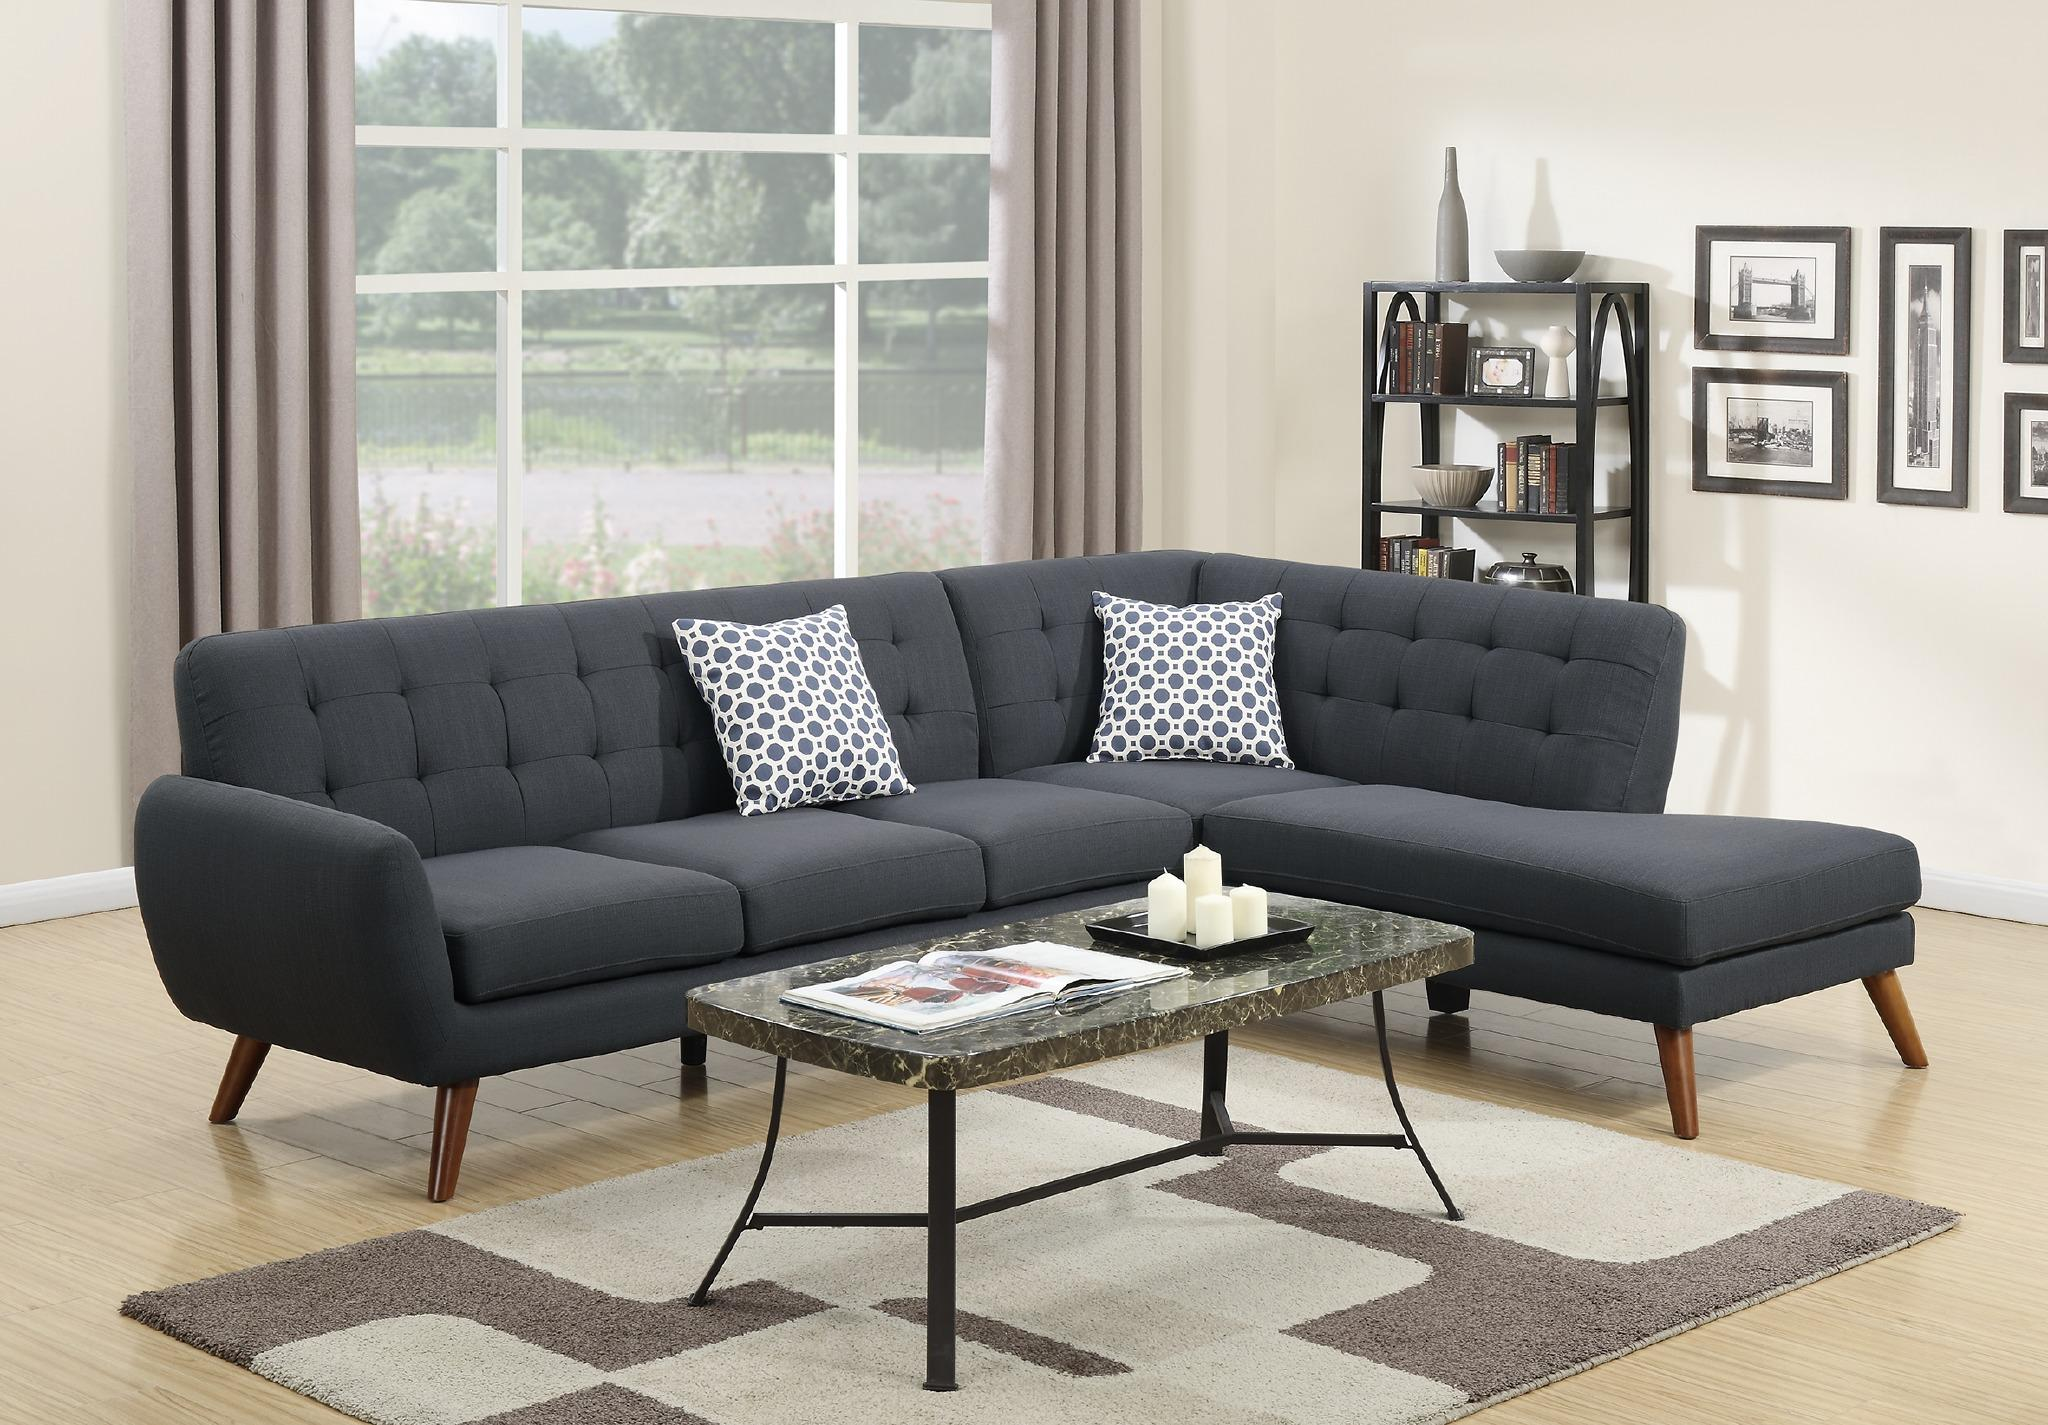 poundex bobkona sofa showroom productdetails catalogsite categories sectional loading zoom furniture